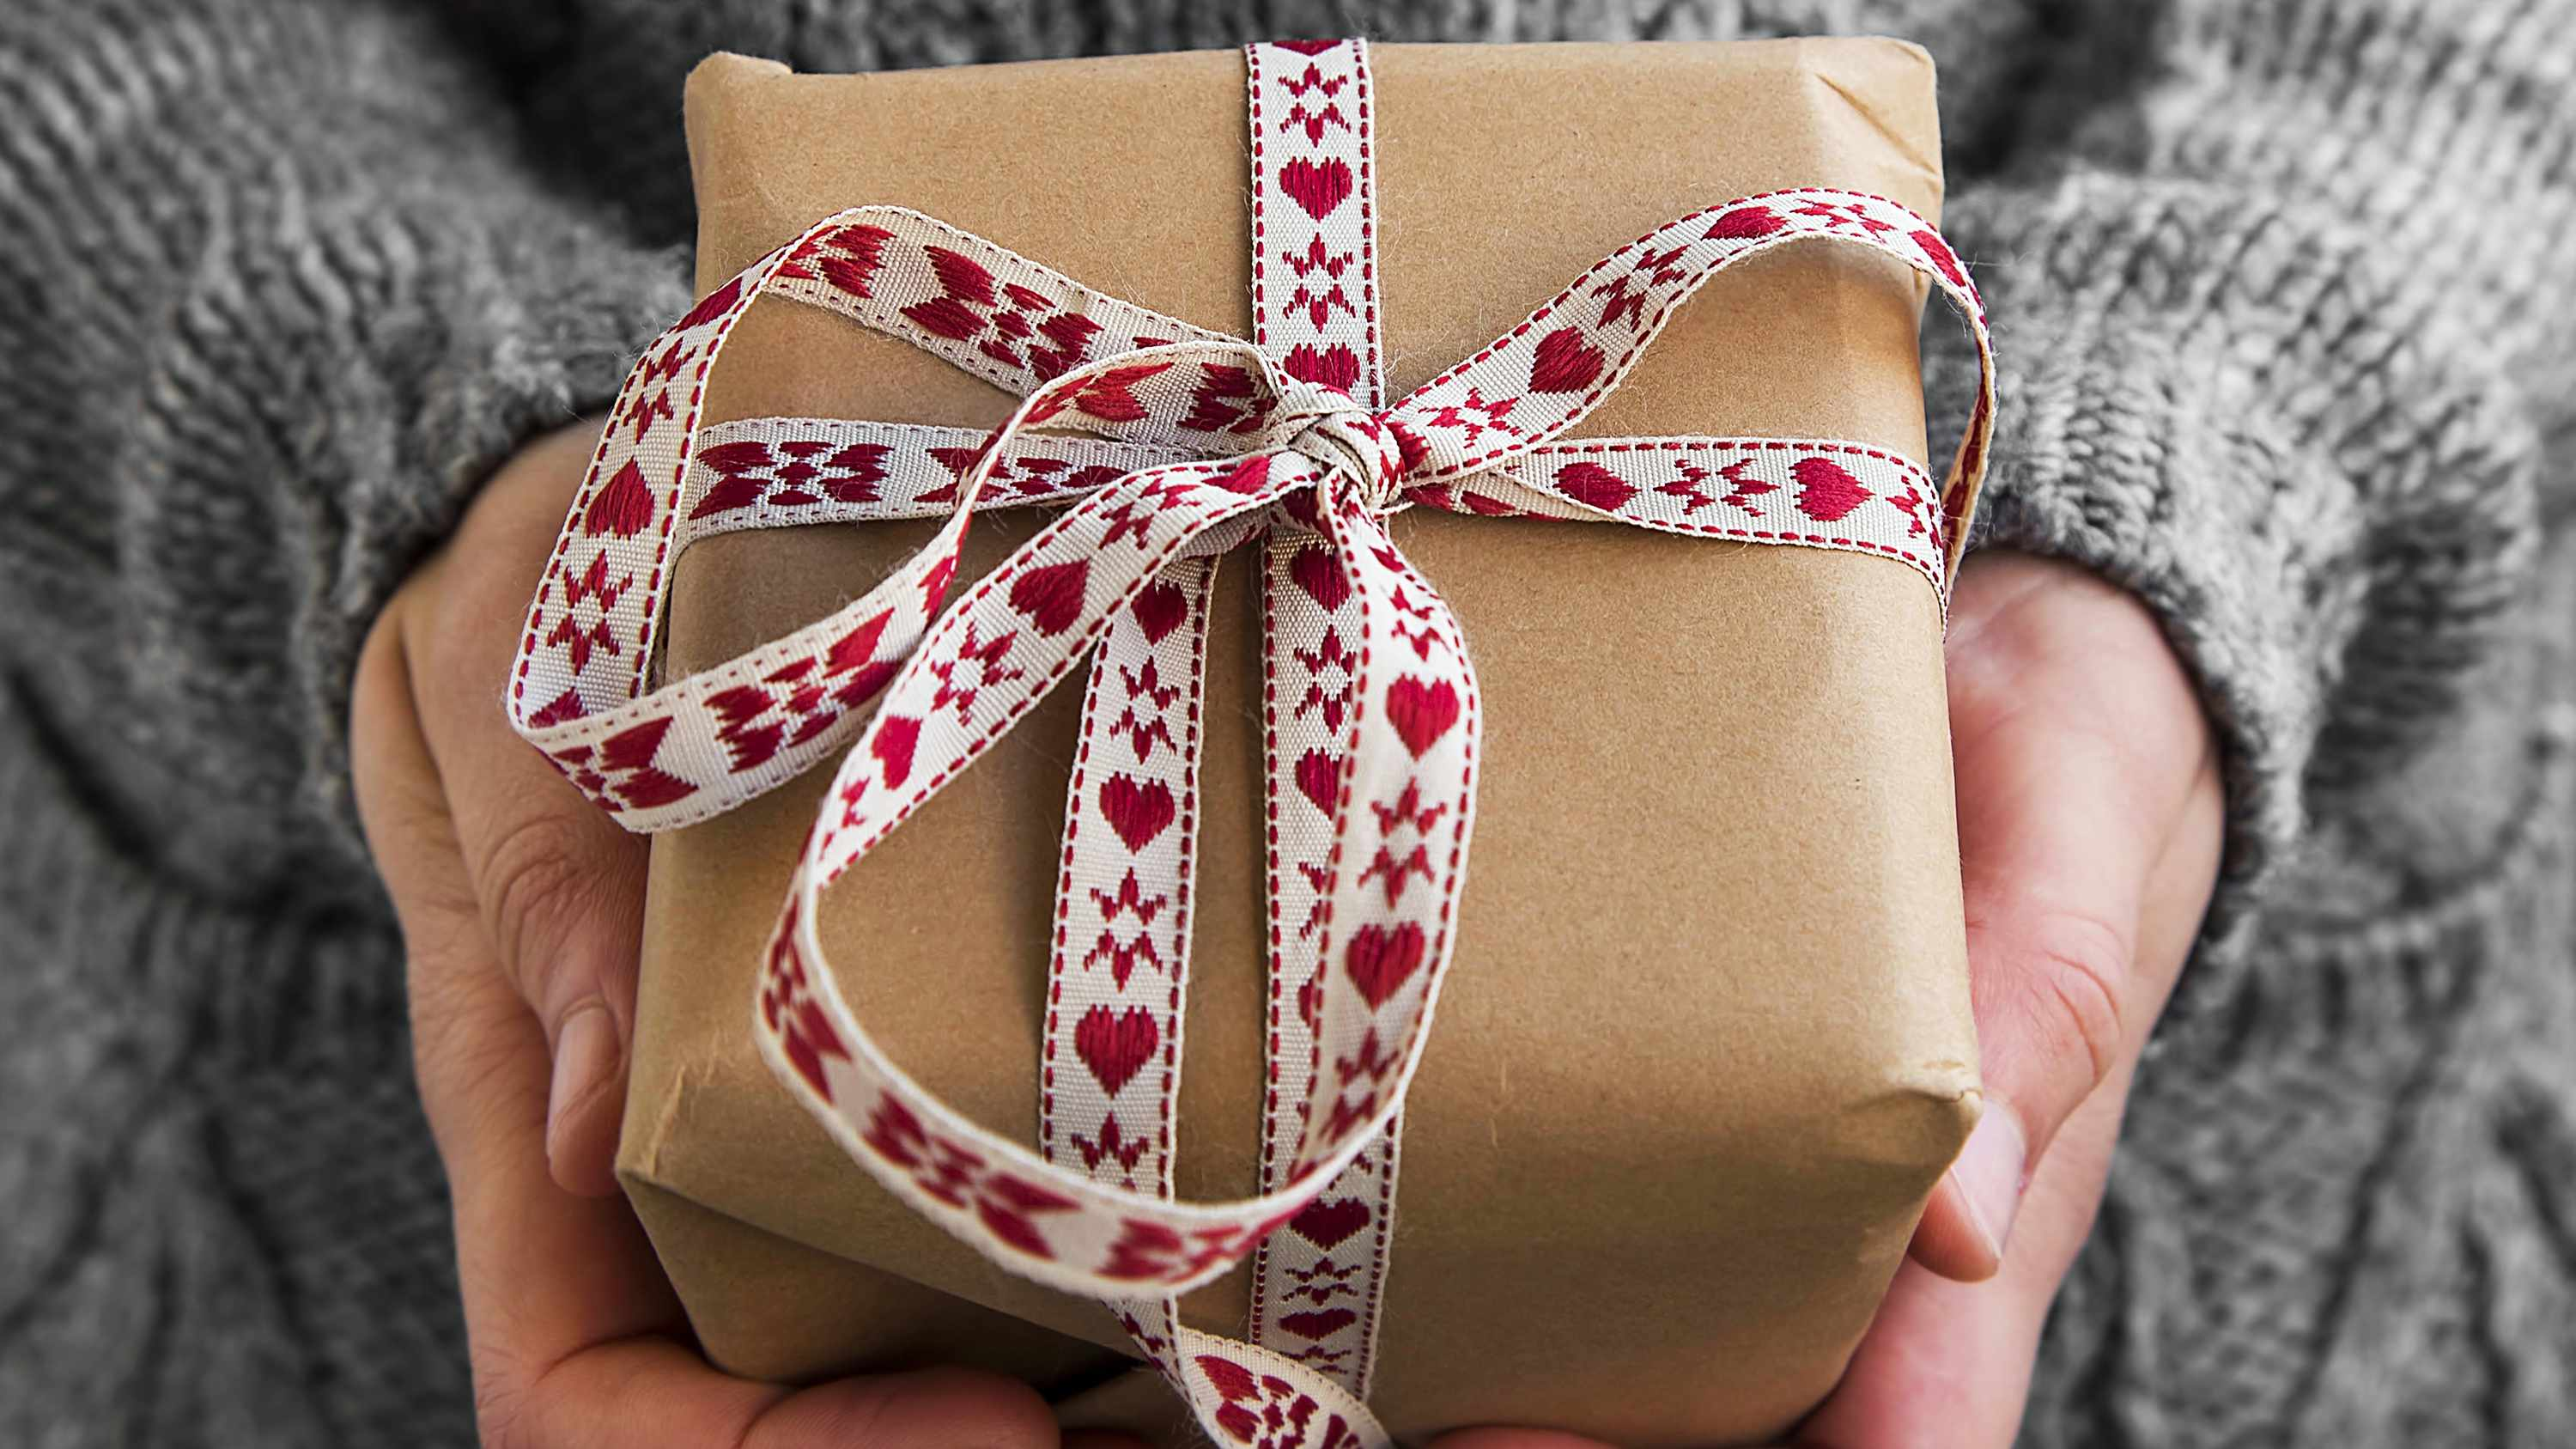 a person holding a present wrapped in brown gift paper with a heart ribbon